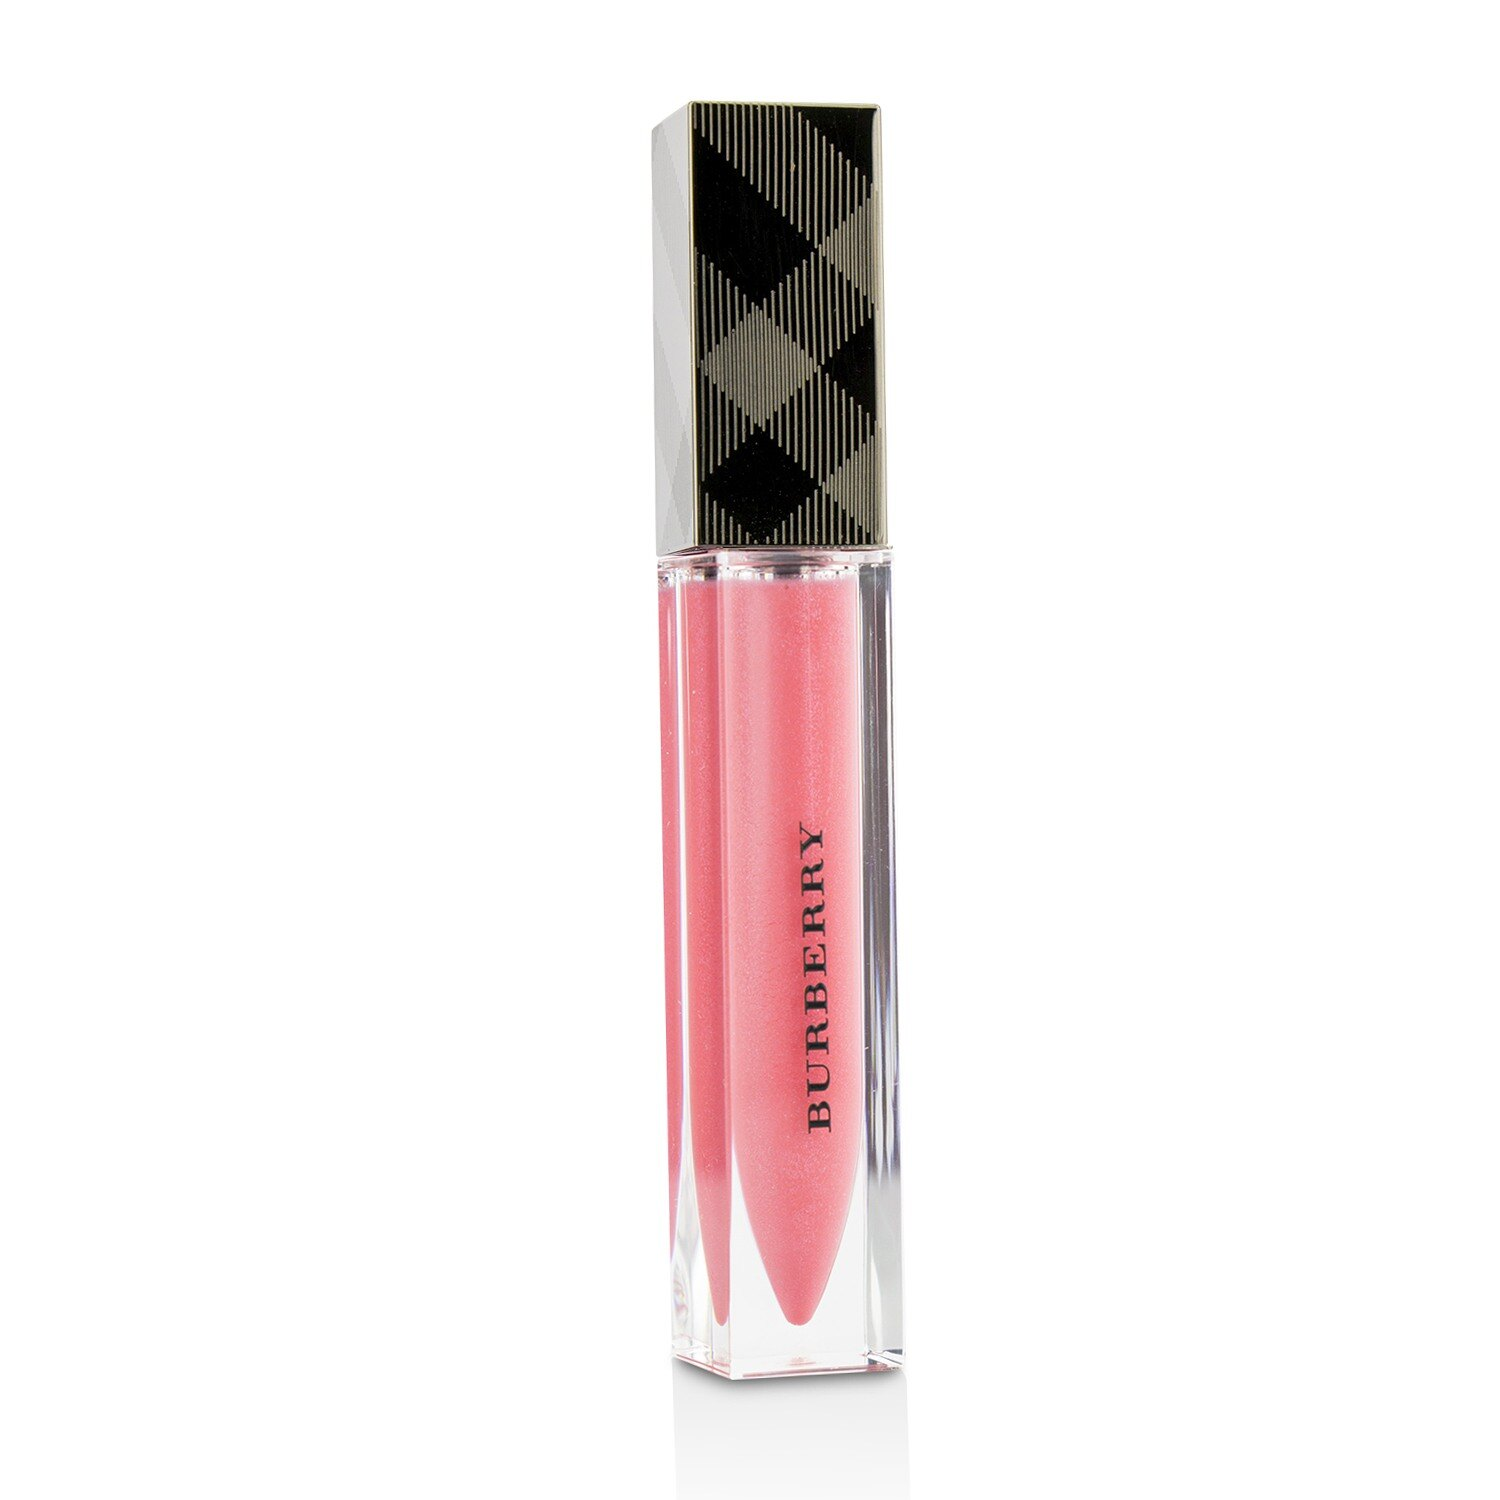 Burberry 巴寶莉 水潤亮采唇蜜 Burberry Kisses Gloss - # No. 41 Pearl Rose珍珠玫瑰色 6ml/0.2oz